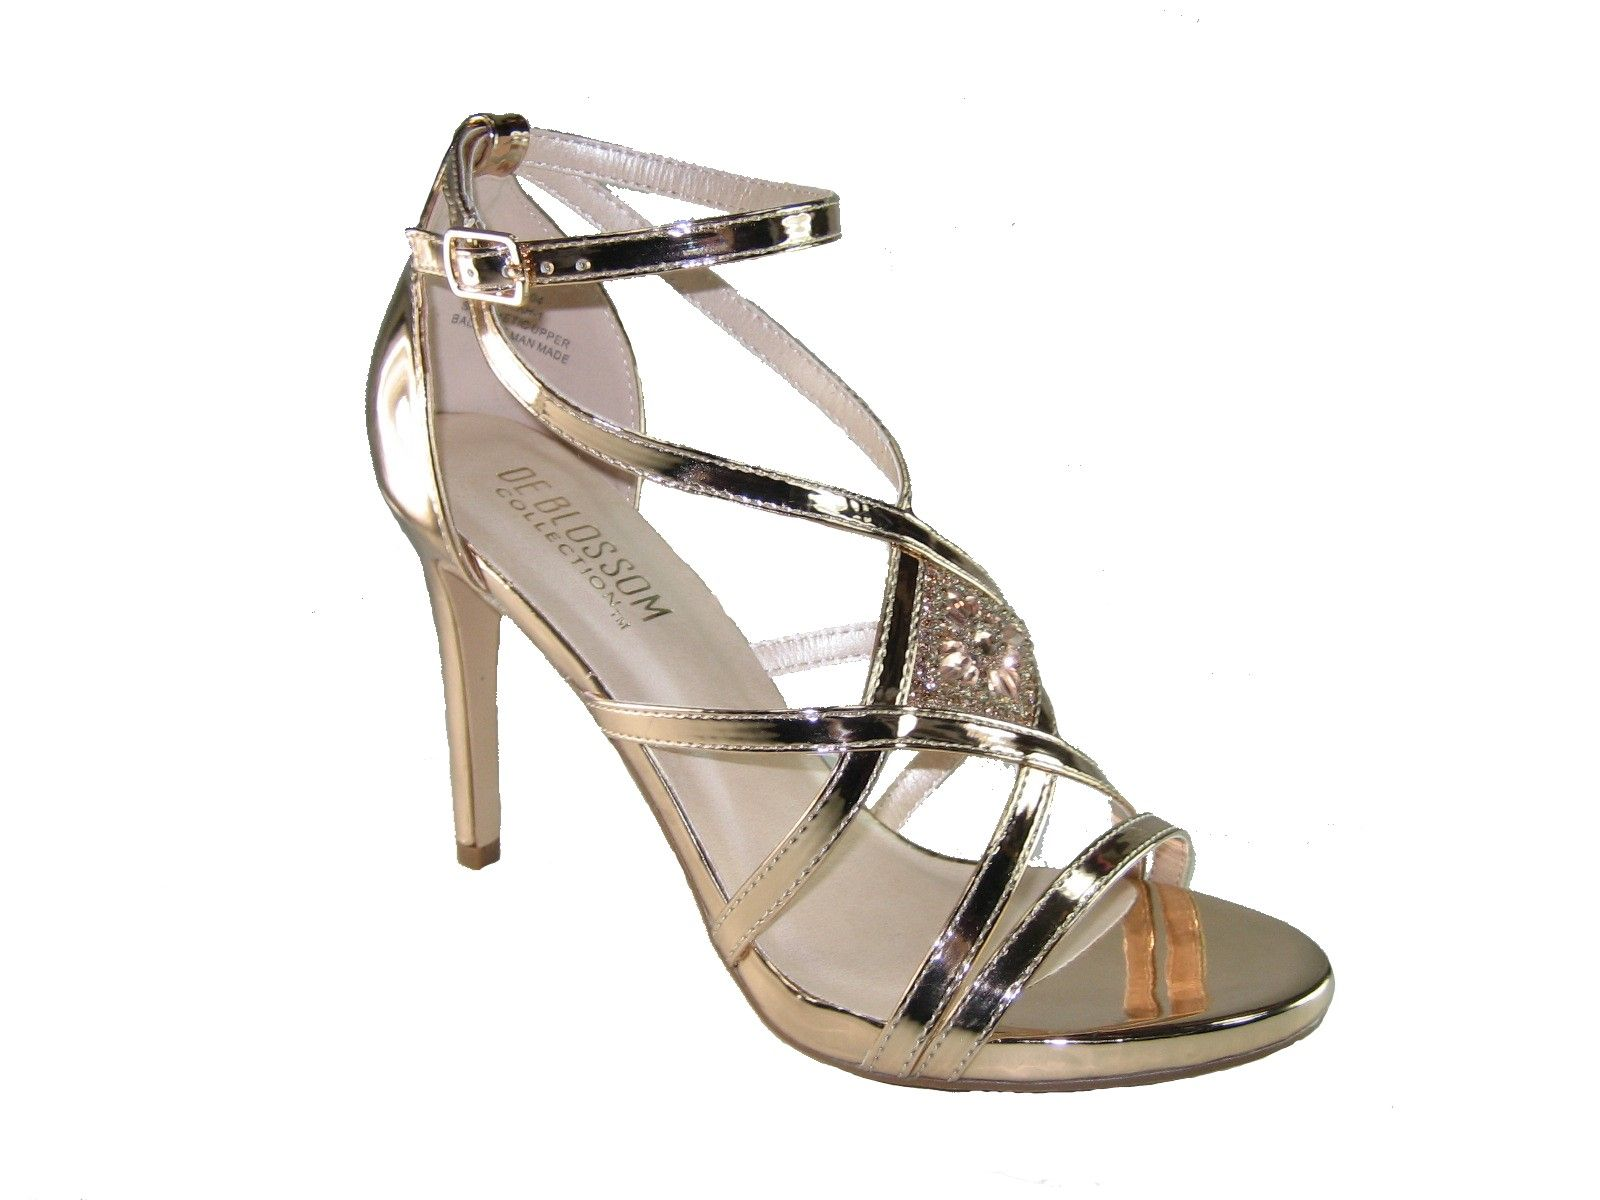 b9d8778a4d1 Blossom Leah-1 strappy 4 inch stiletto heel party sandals rose gold metallic